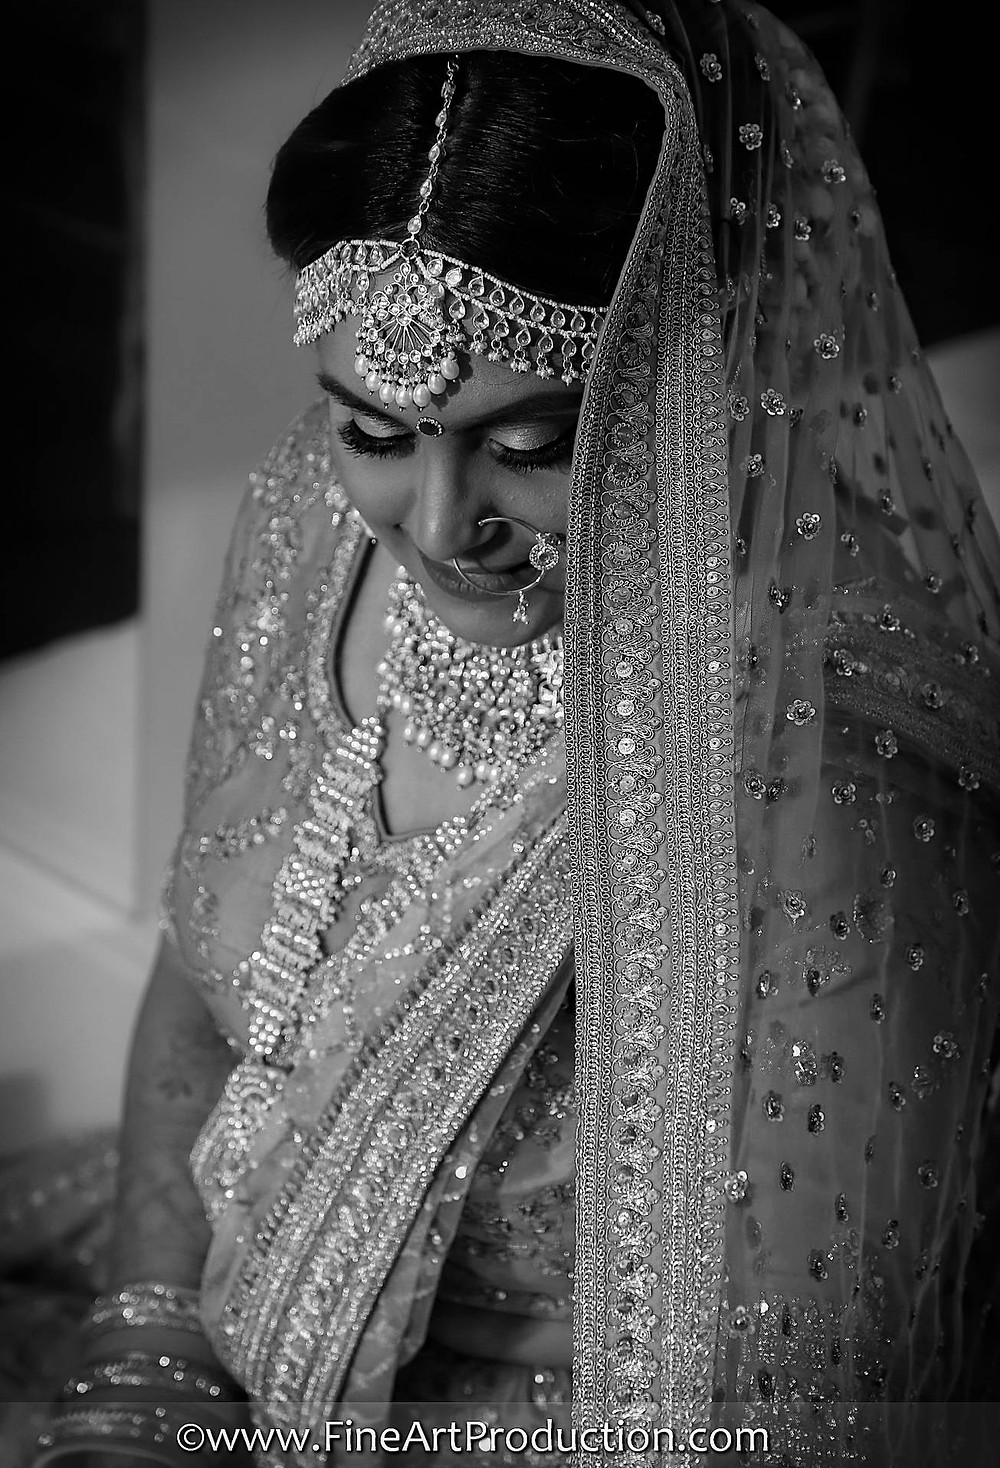 Detail Black and White Portrait of Indian Bride